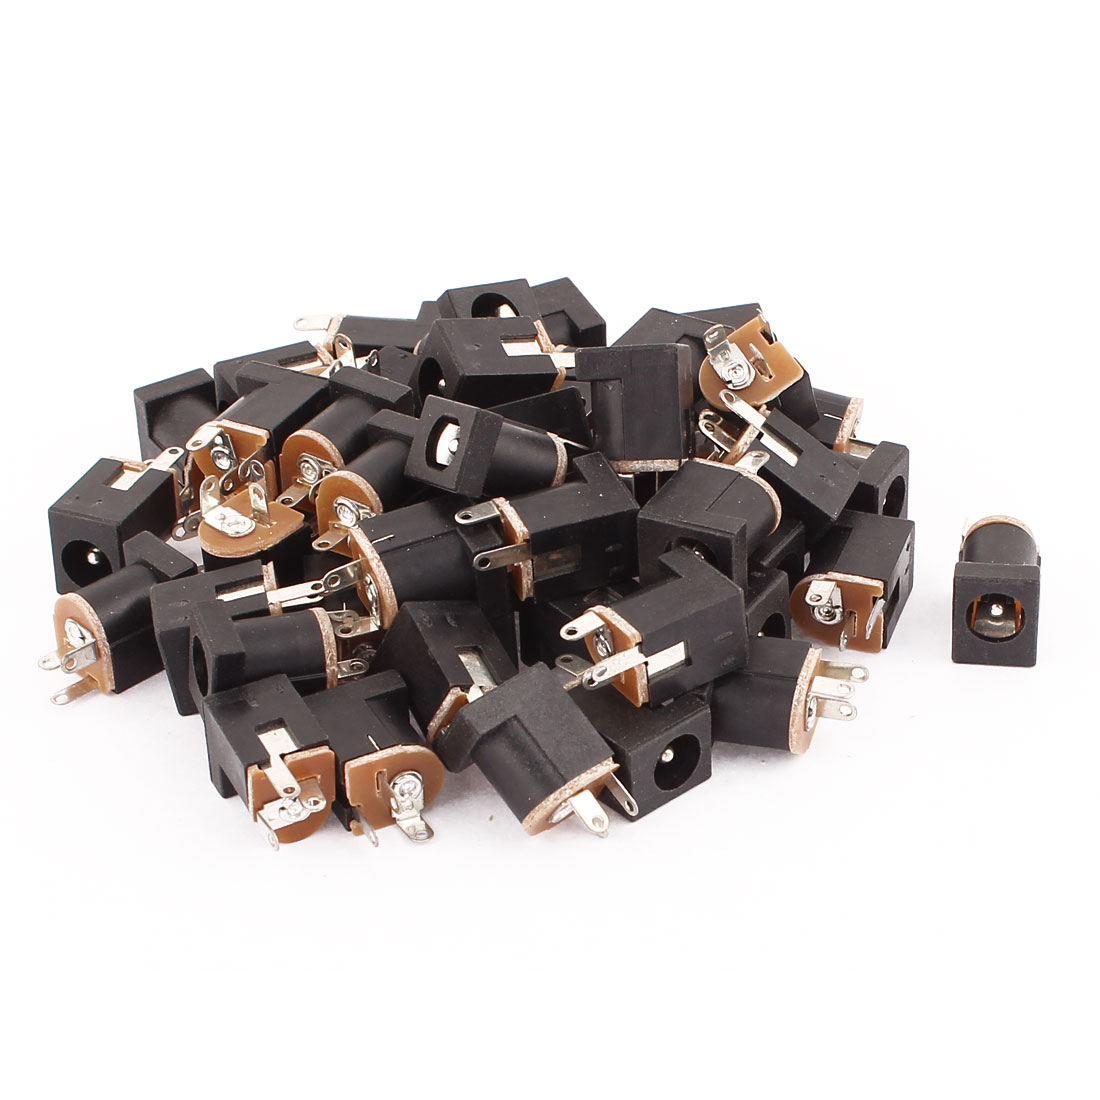 50 Pcs 3 Pin 2.1 x 5.5mm DC Power Jack Socket PCB Mount Panel Solder Connector